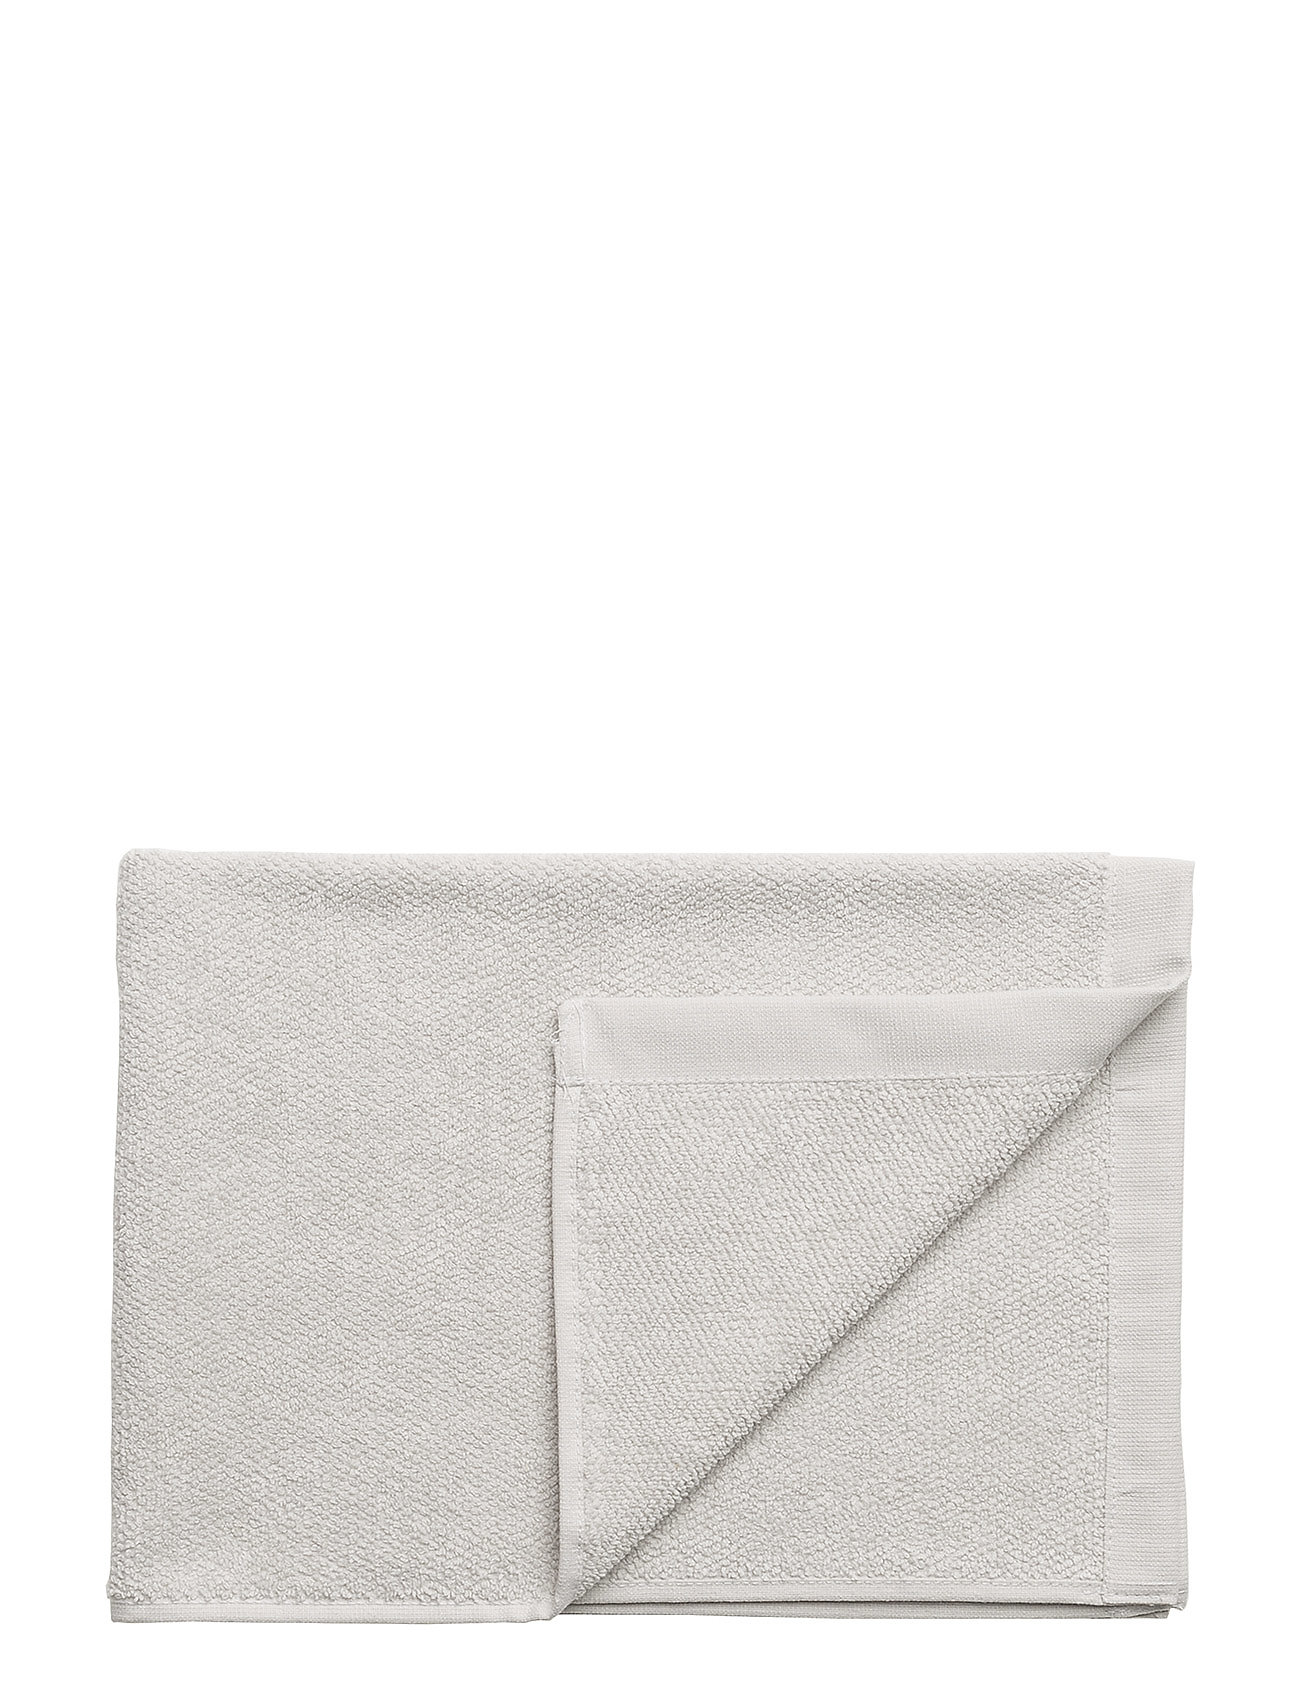 Gripsholm TOWEL COTTON LINEN - LUNAR ROCK